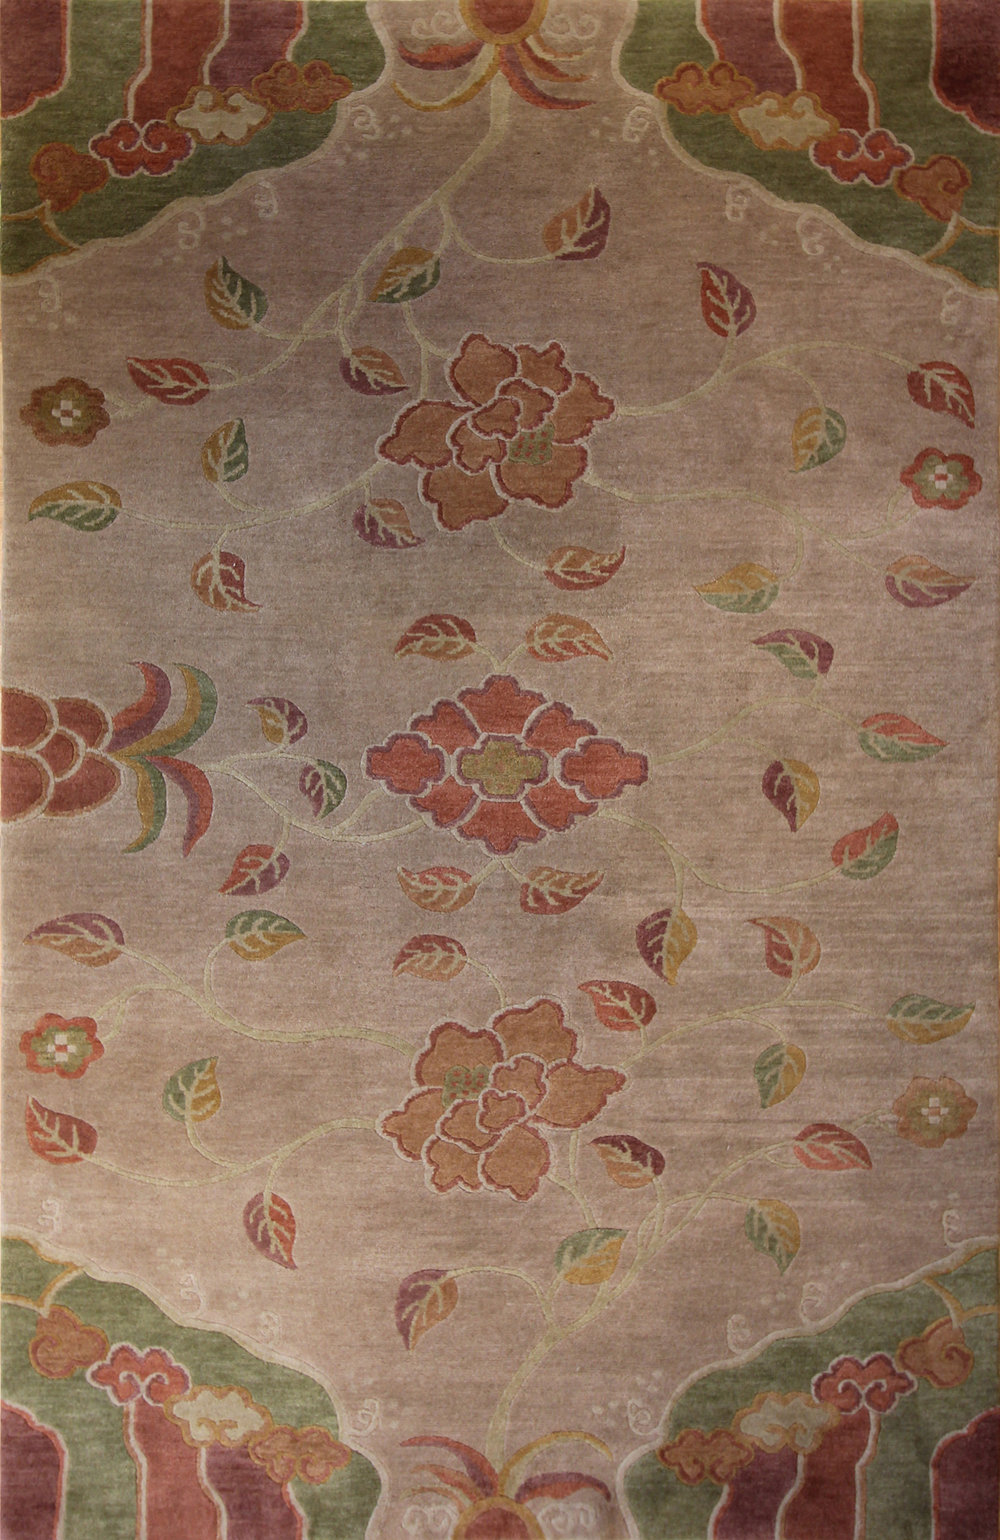 17 Three Lotus, Tibet, 6'x9'3''